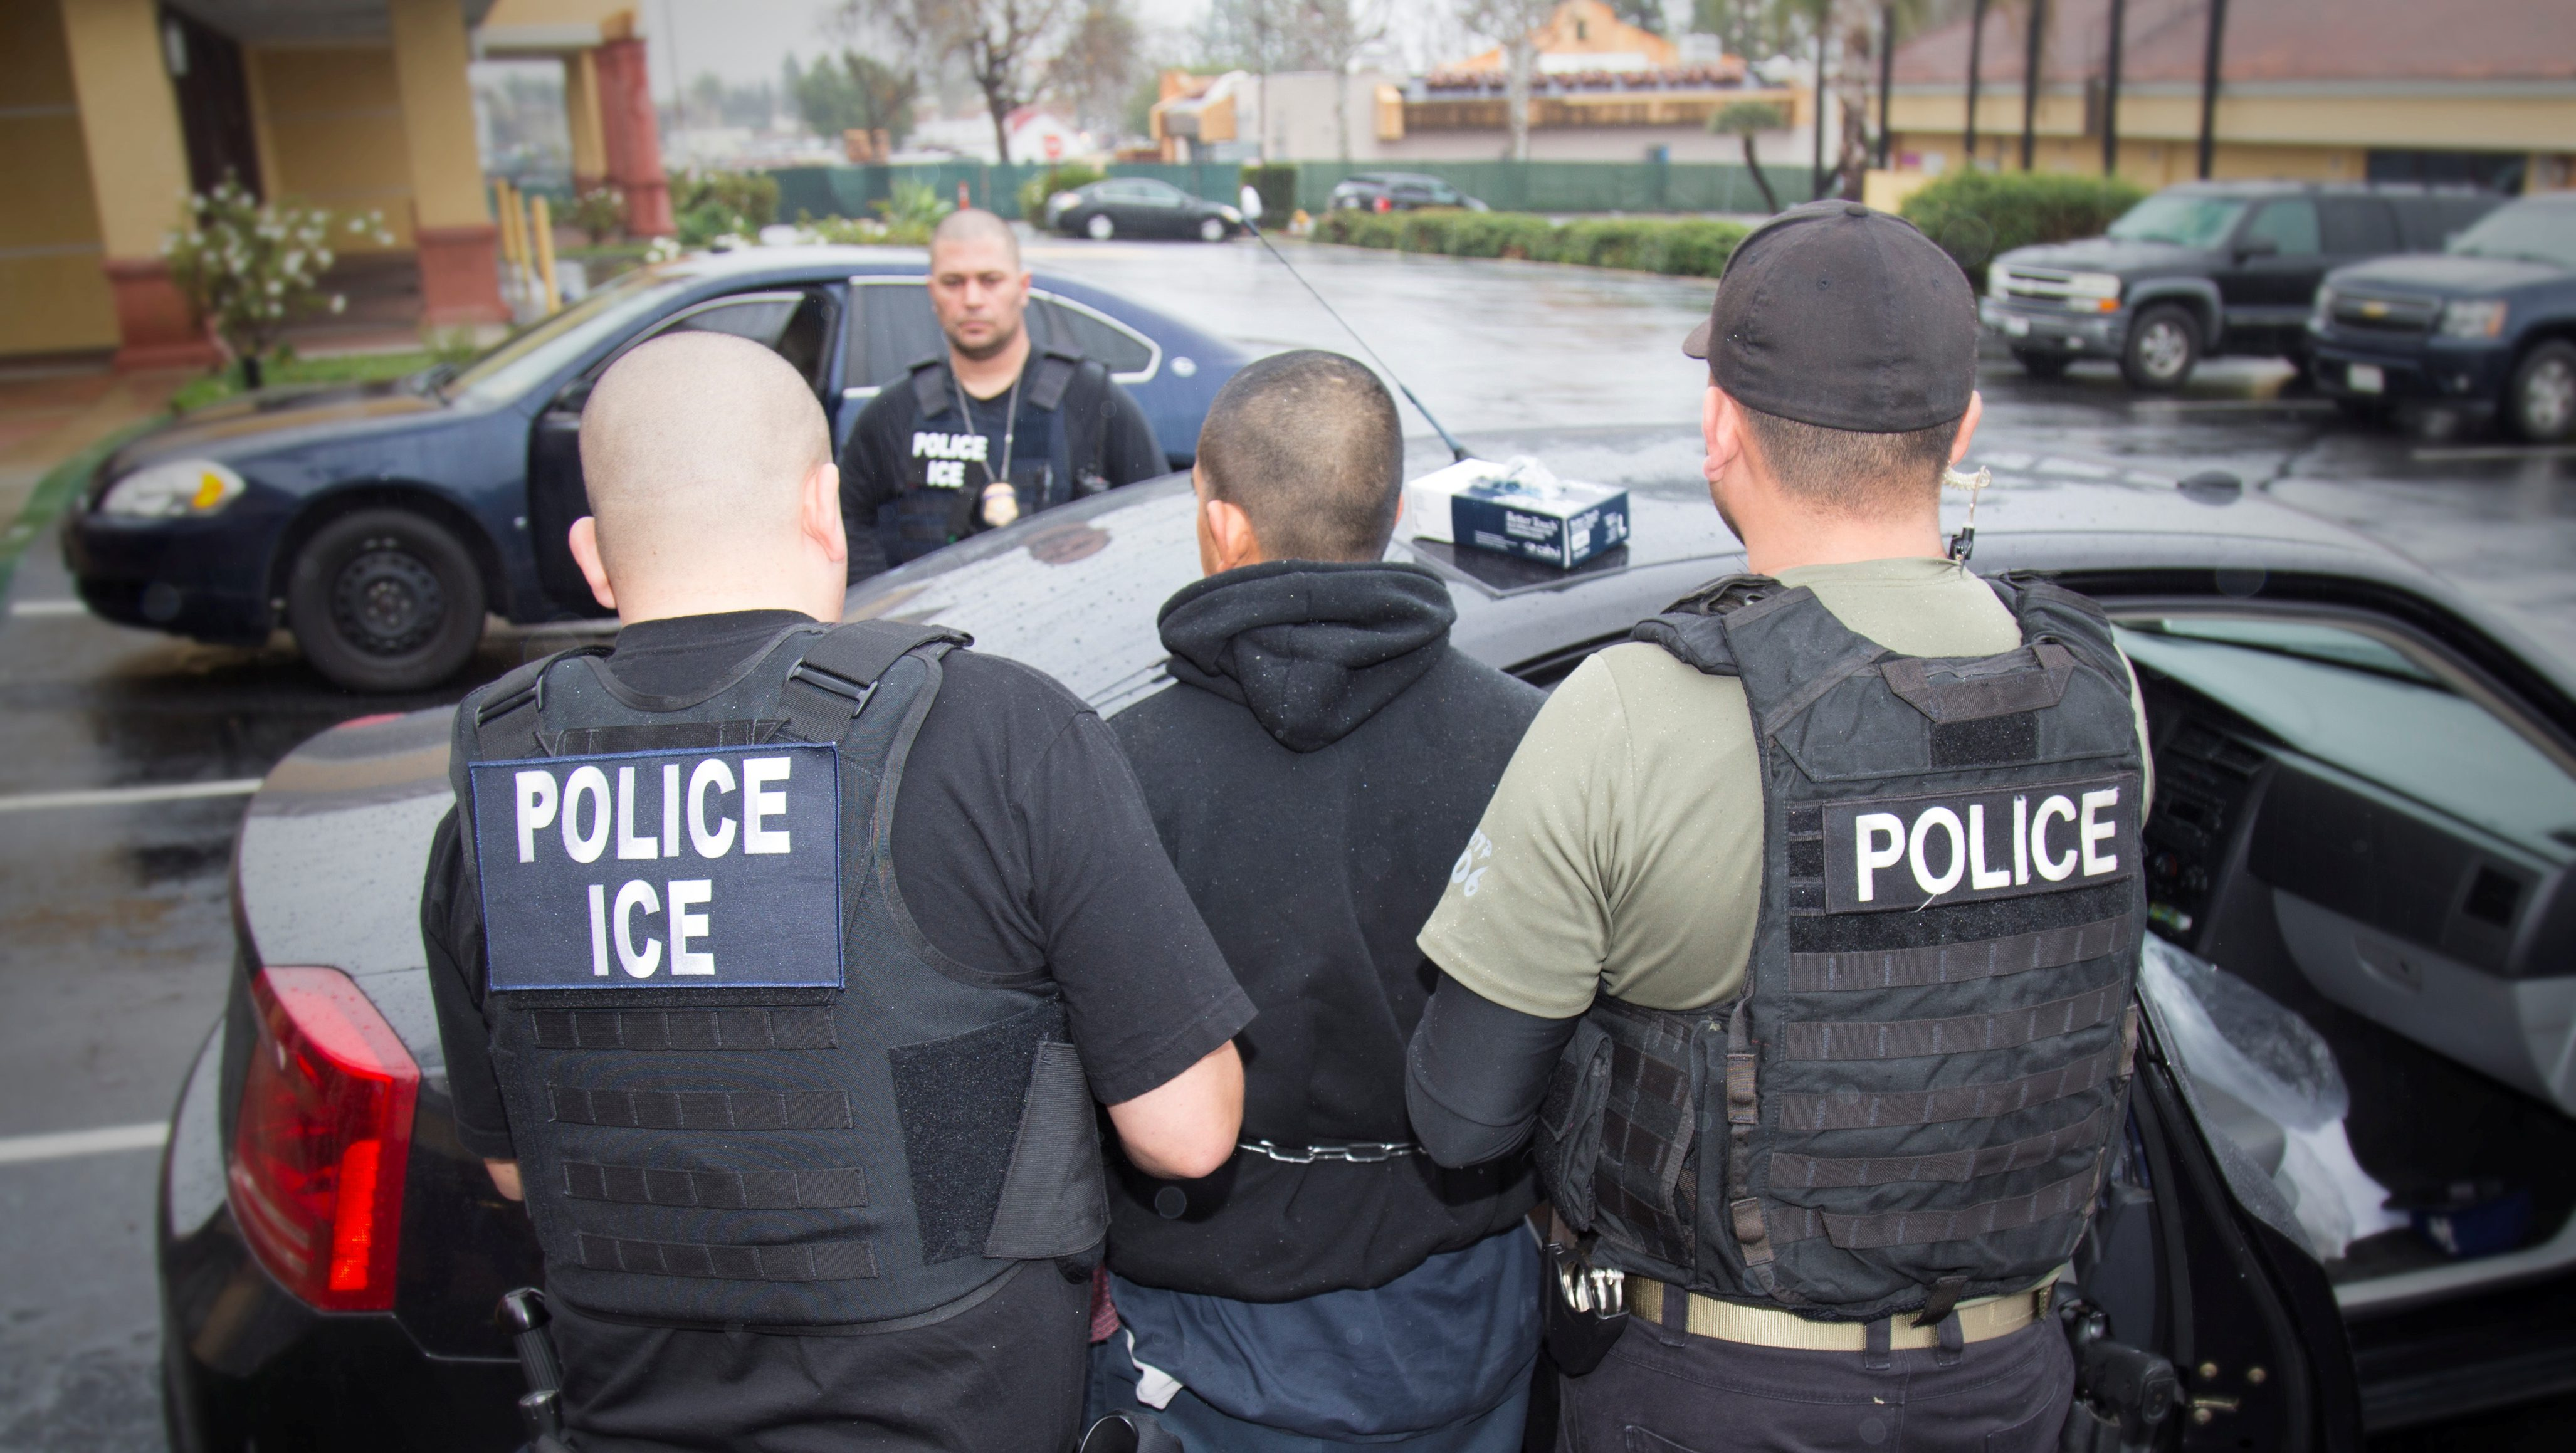 U.S. Immigration and Customs Enforcement (ICE) officers detain a suspect as they conduct a targeted enforcement operation in Los Angeles, California, U.S. on February 7, 2017. Picture taken on February 7, 2017.